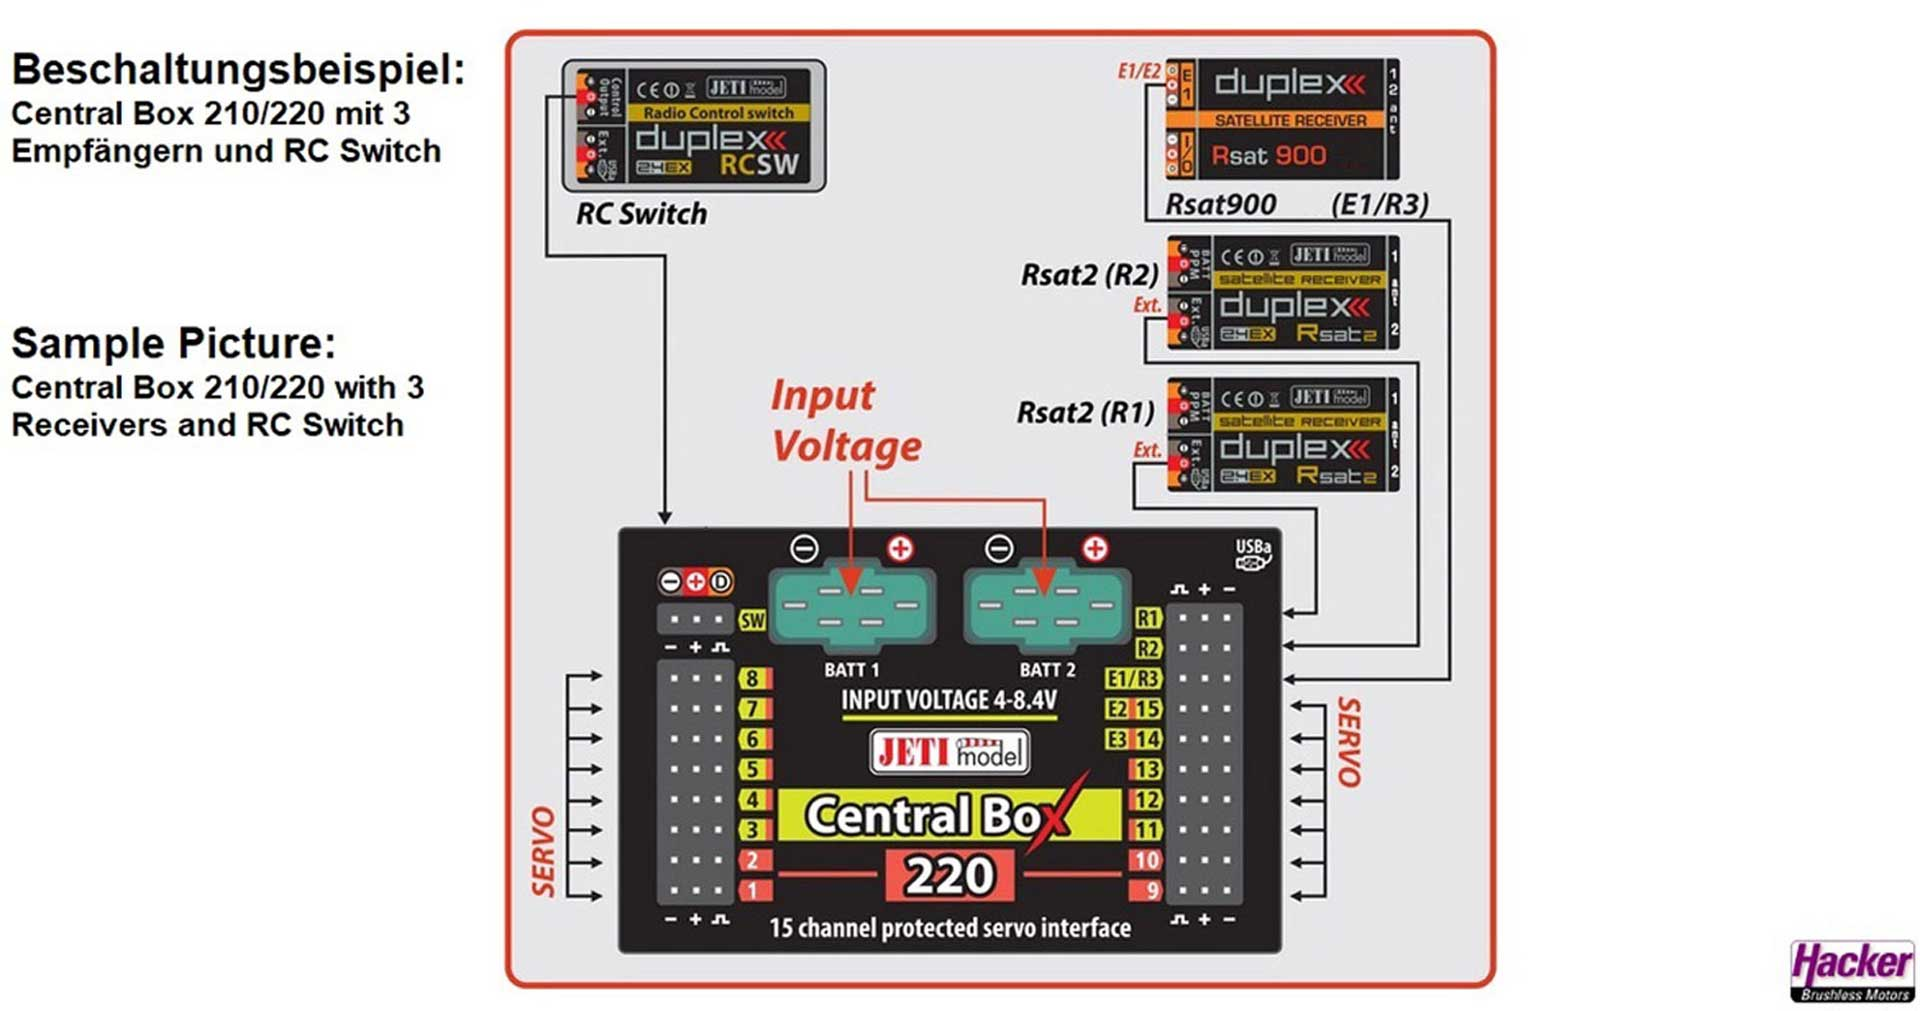 JETI CENTRAL BOX 220 + 2 RSAT2 DUPLEX 2.4EX